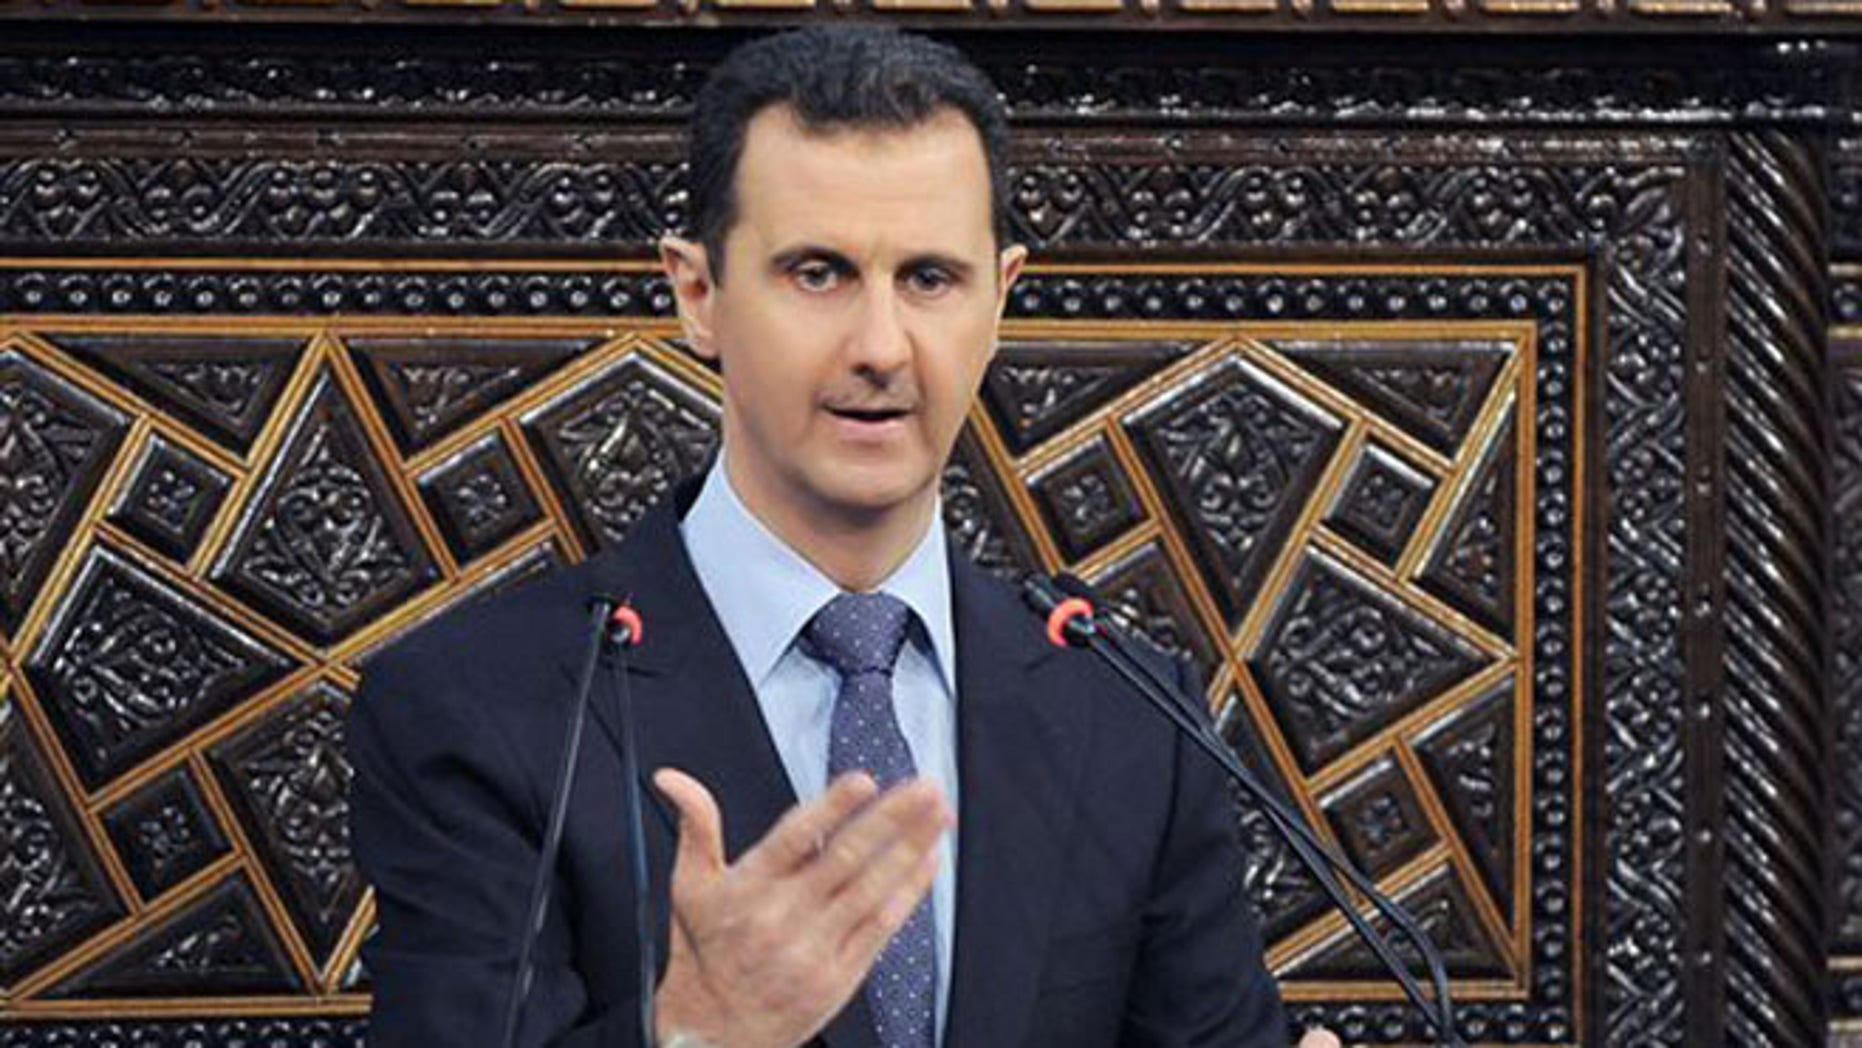 """June 3, 2012: In a much-anticipated speech, embattled Syrian president Bashar al-Assad blames foreign powers and """"terrorists"""" for the violence that has wracked the country for the last 15 months. (AP)"""